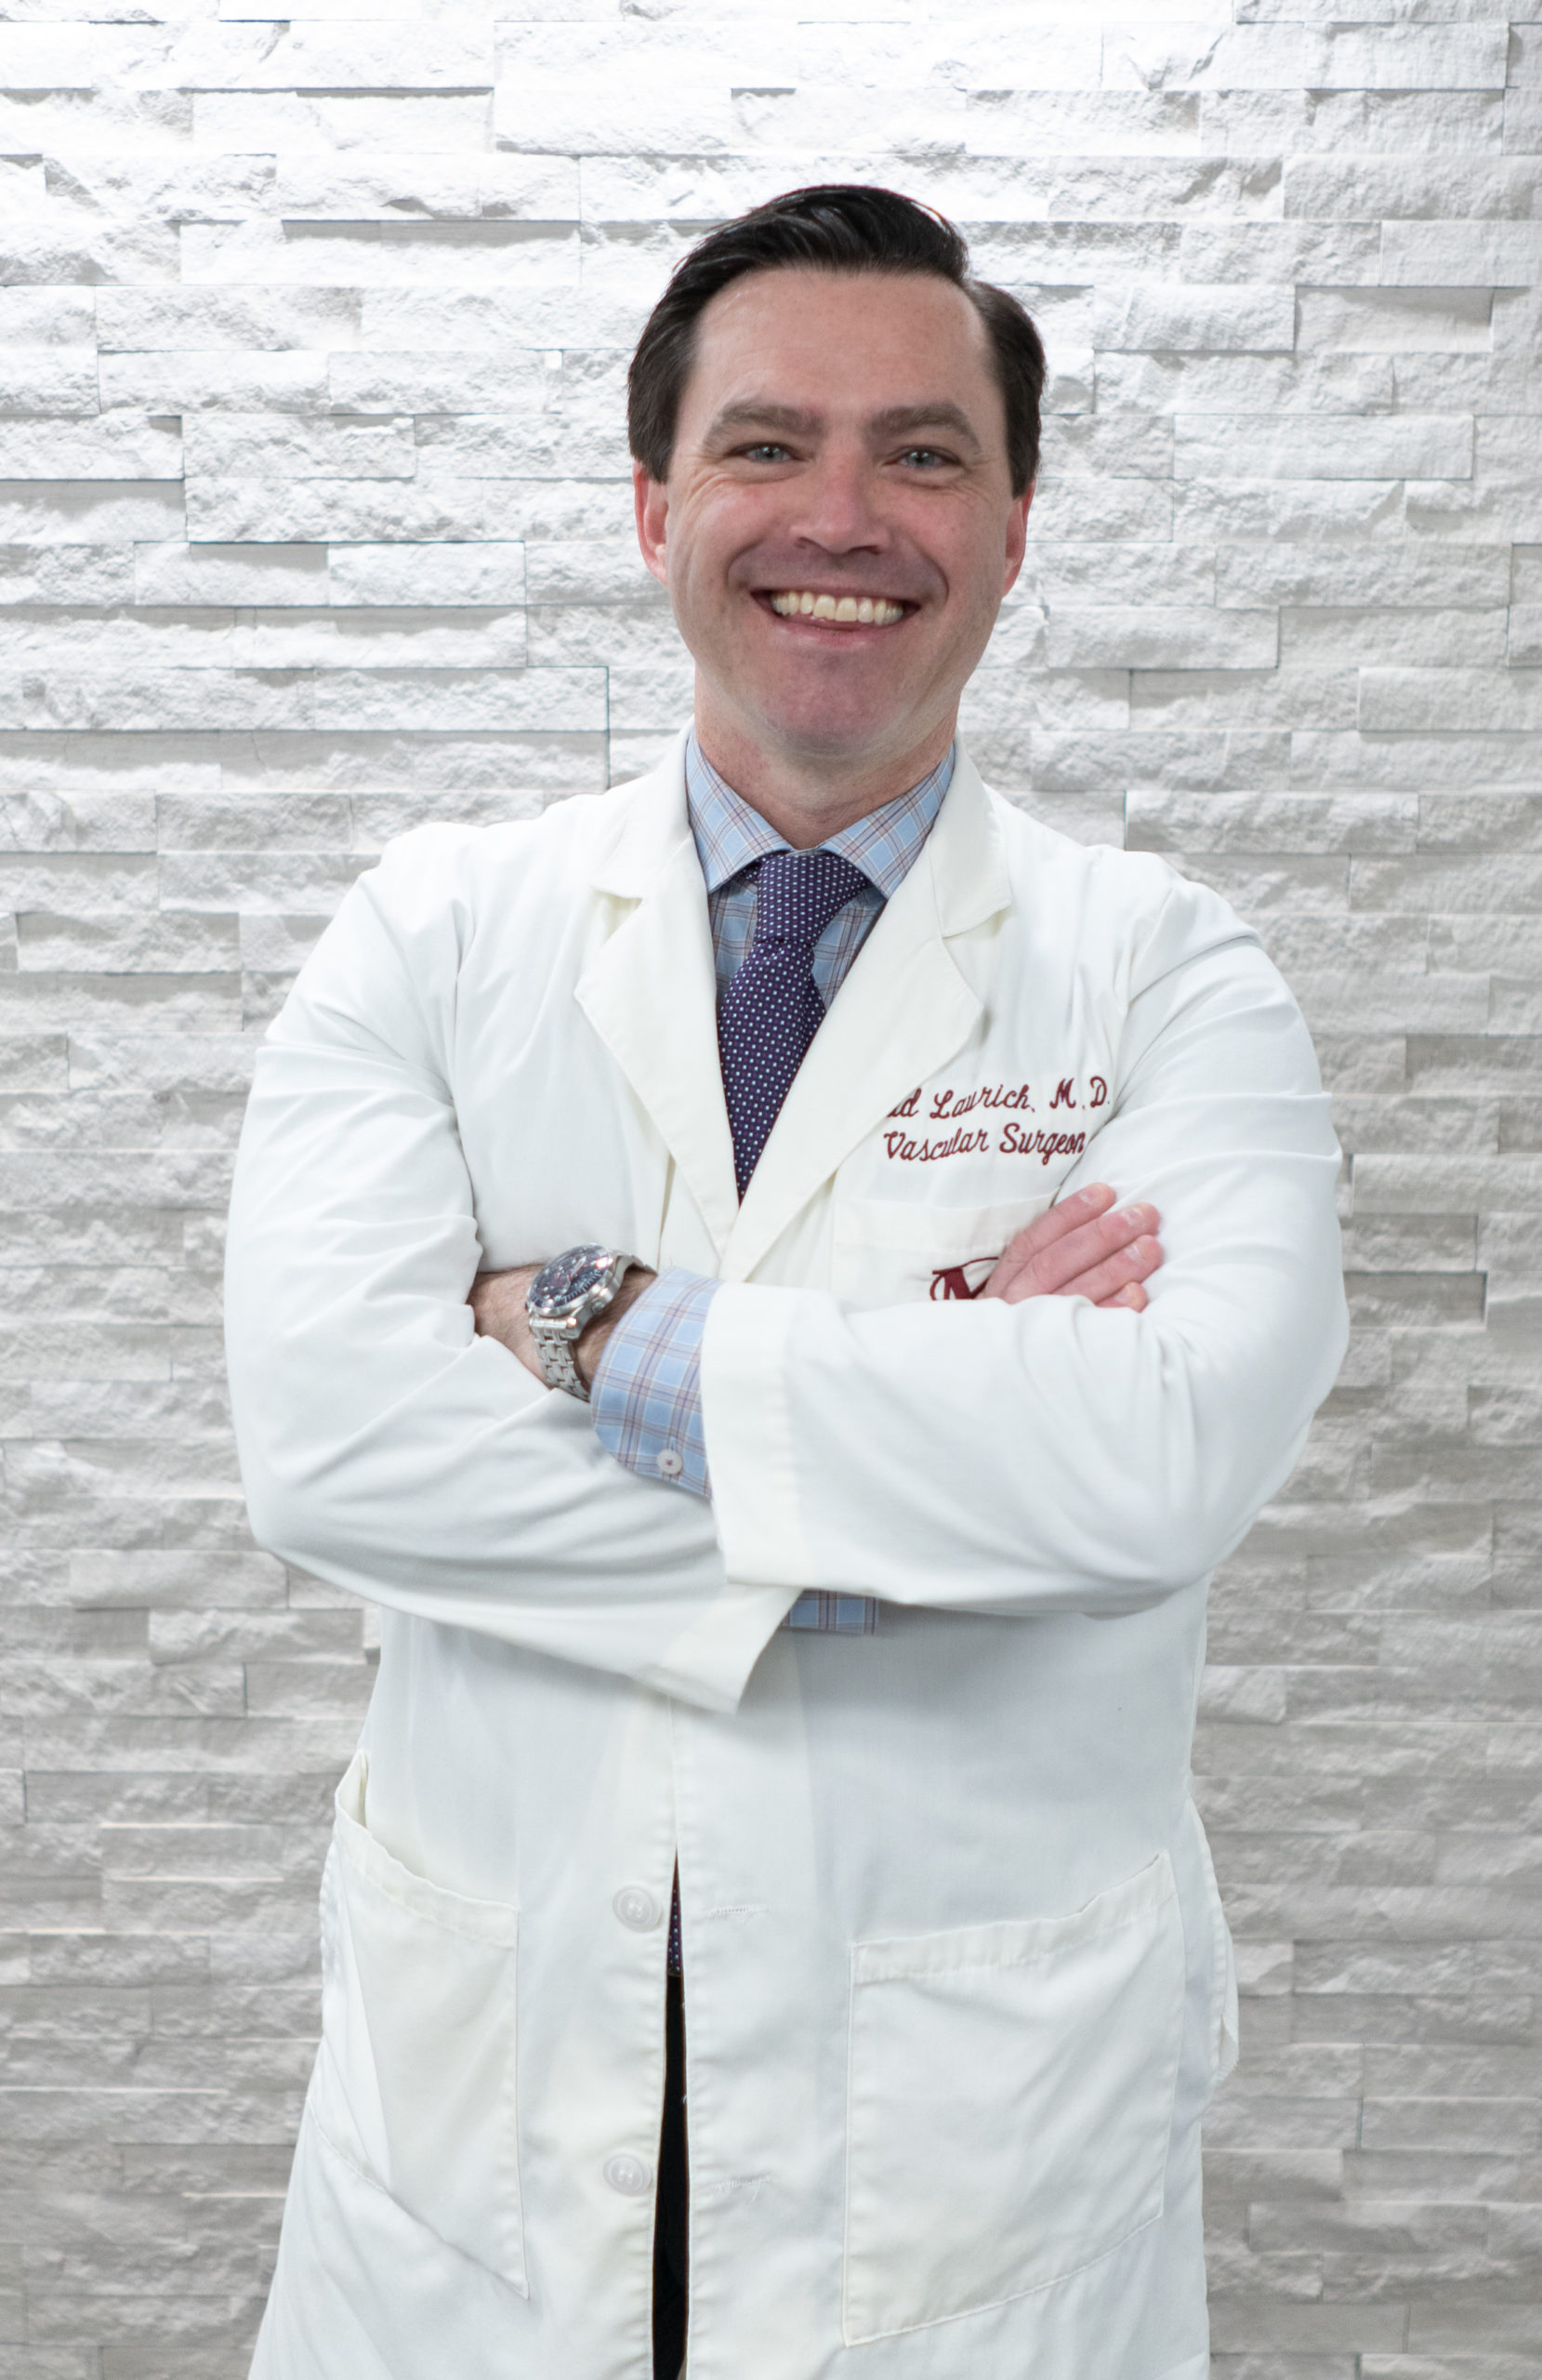 Dr. Chad Laurich MD, Vascular & Vein Institute of Siouxland